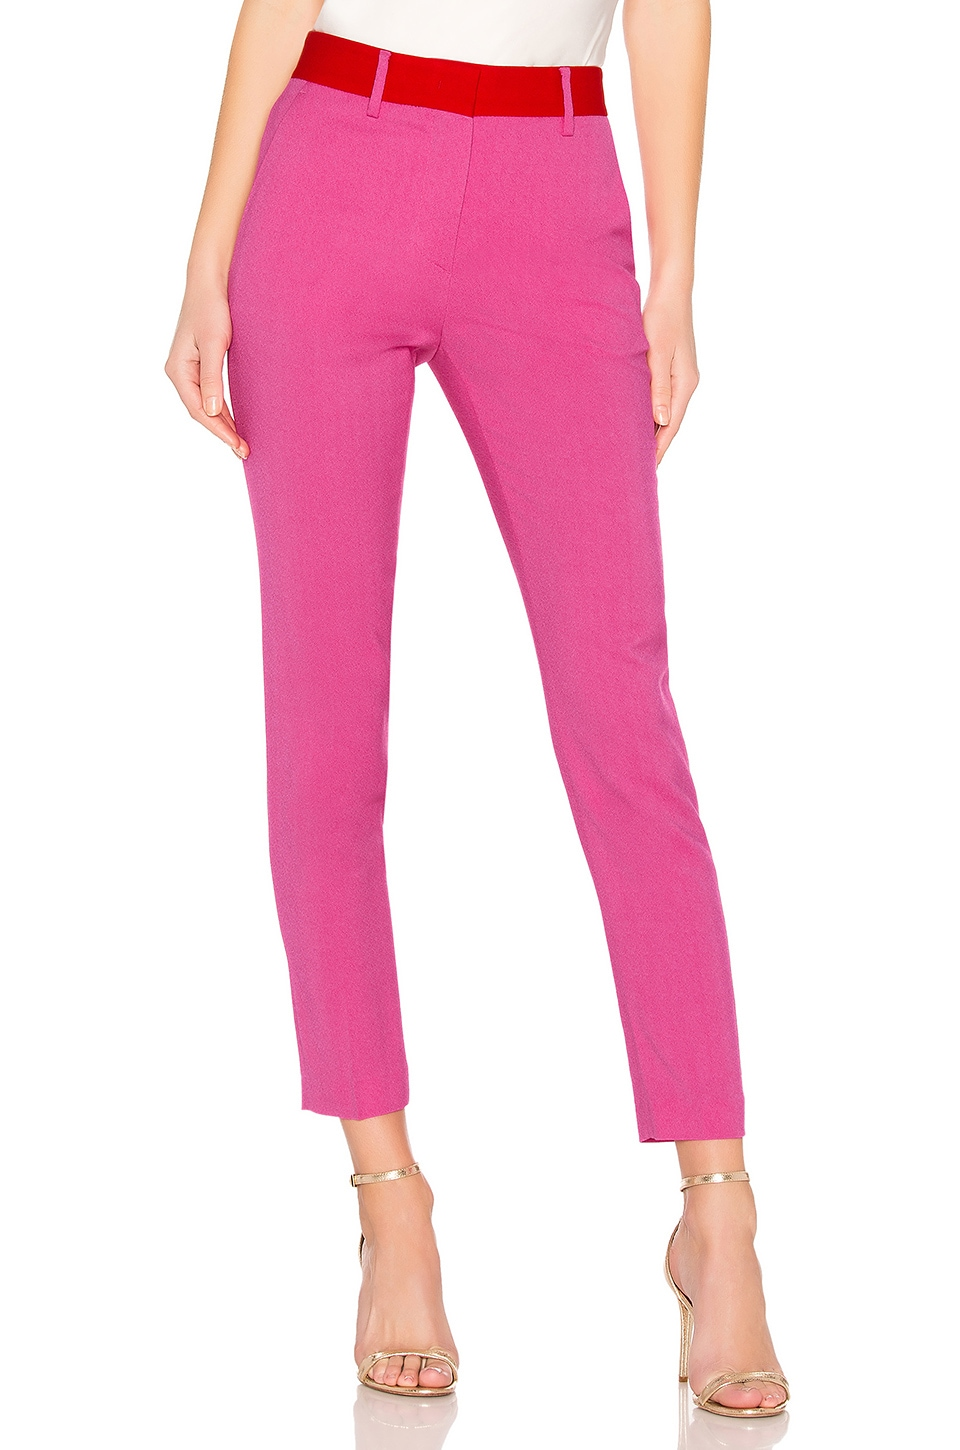 MSGM Slim Trousers in Hot Pink